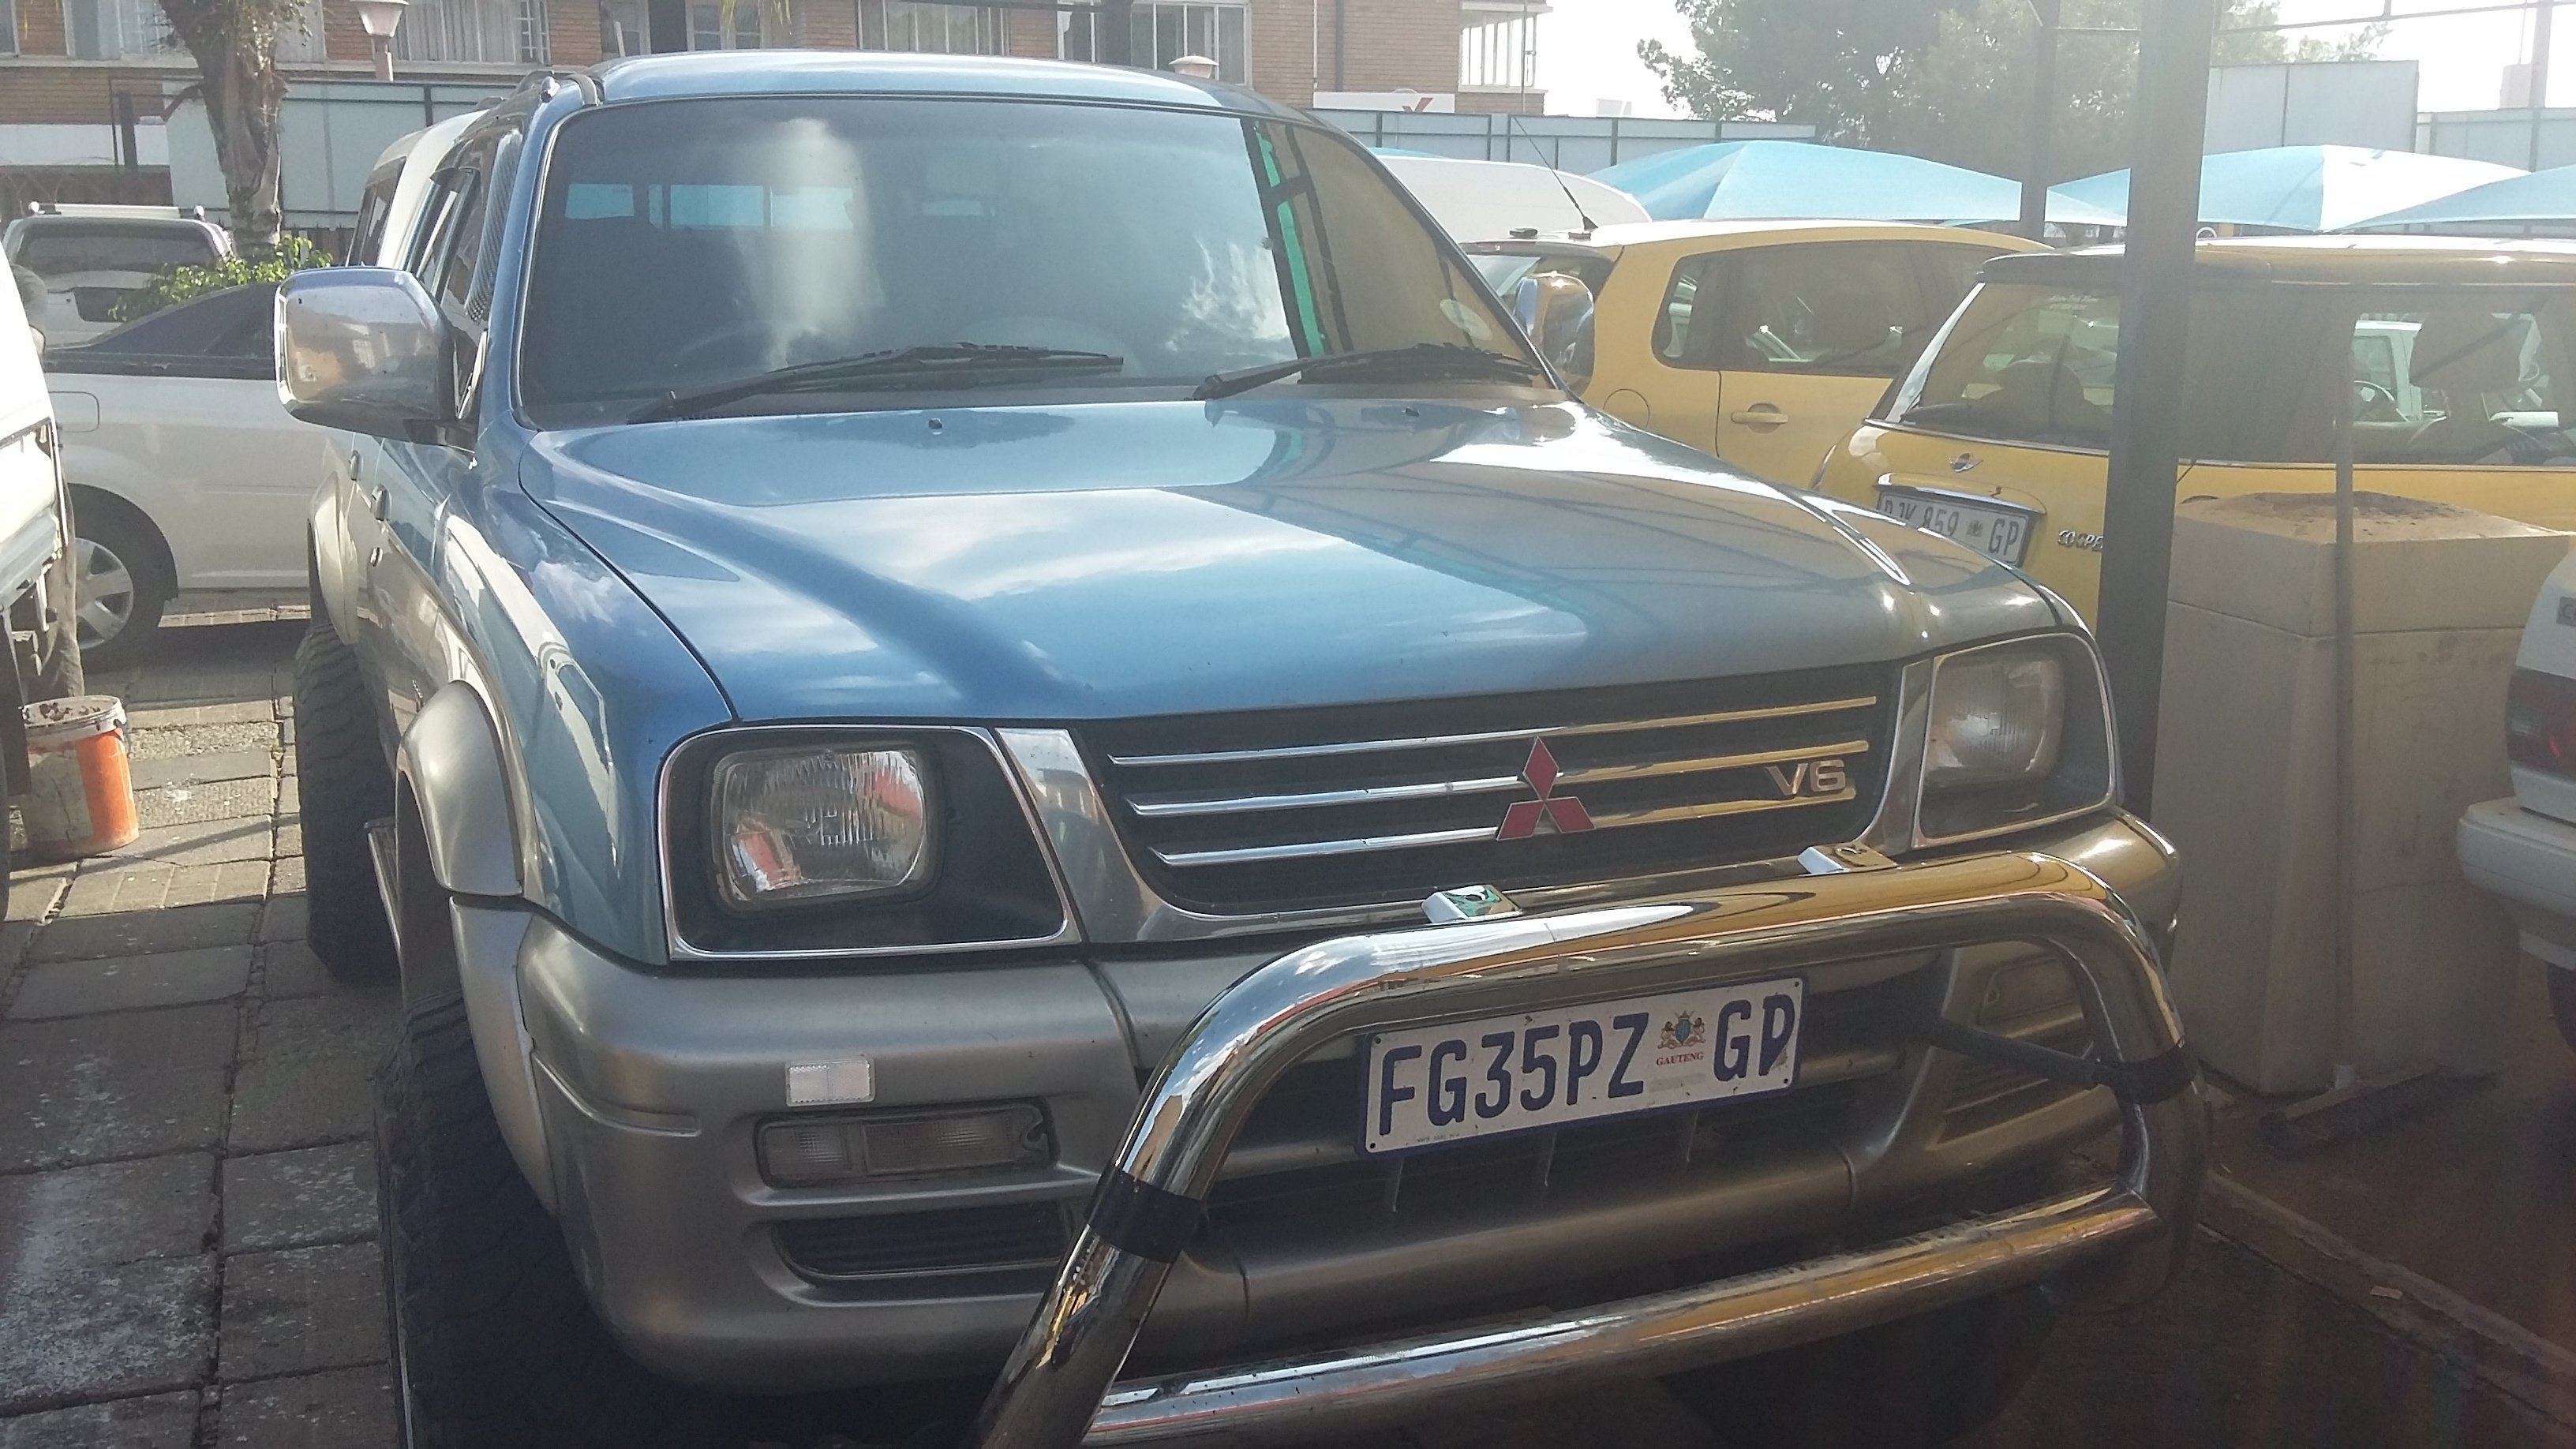 For Sale Mitsubishi Colt 3000 V6 2000 Bakkie Double Cab | Used | Price  R95000 | Gauteng